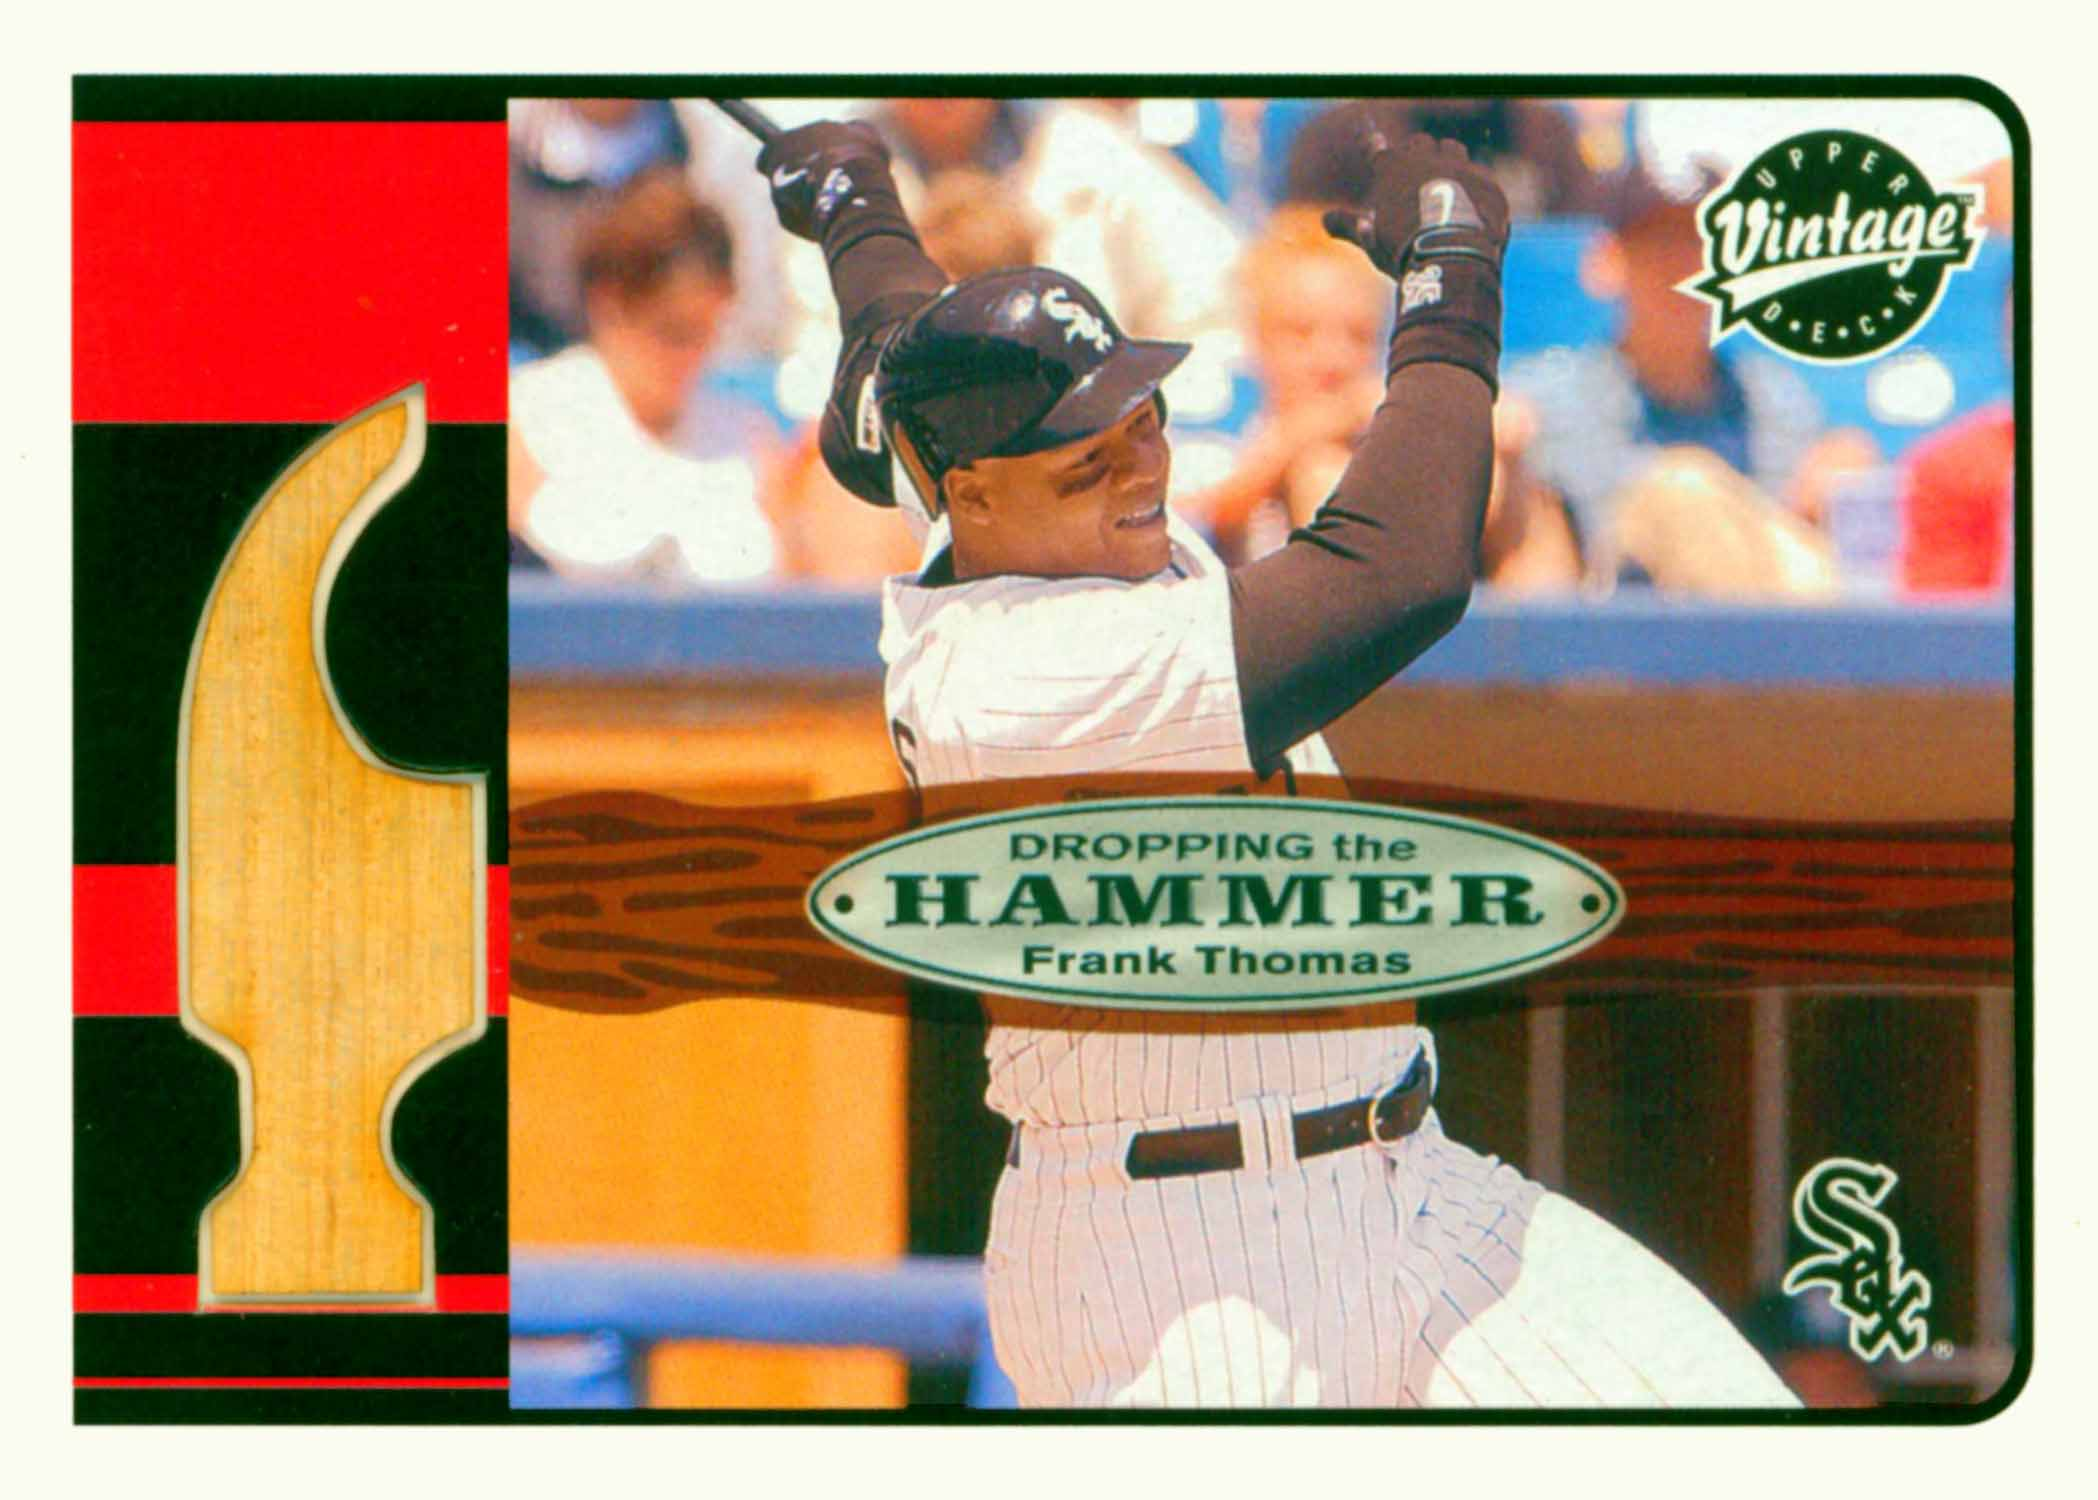 2003 Upper Deck Vintage Dropping the Hammer